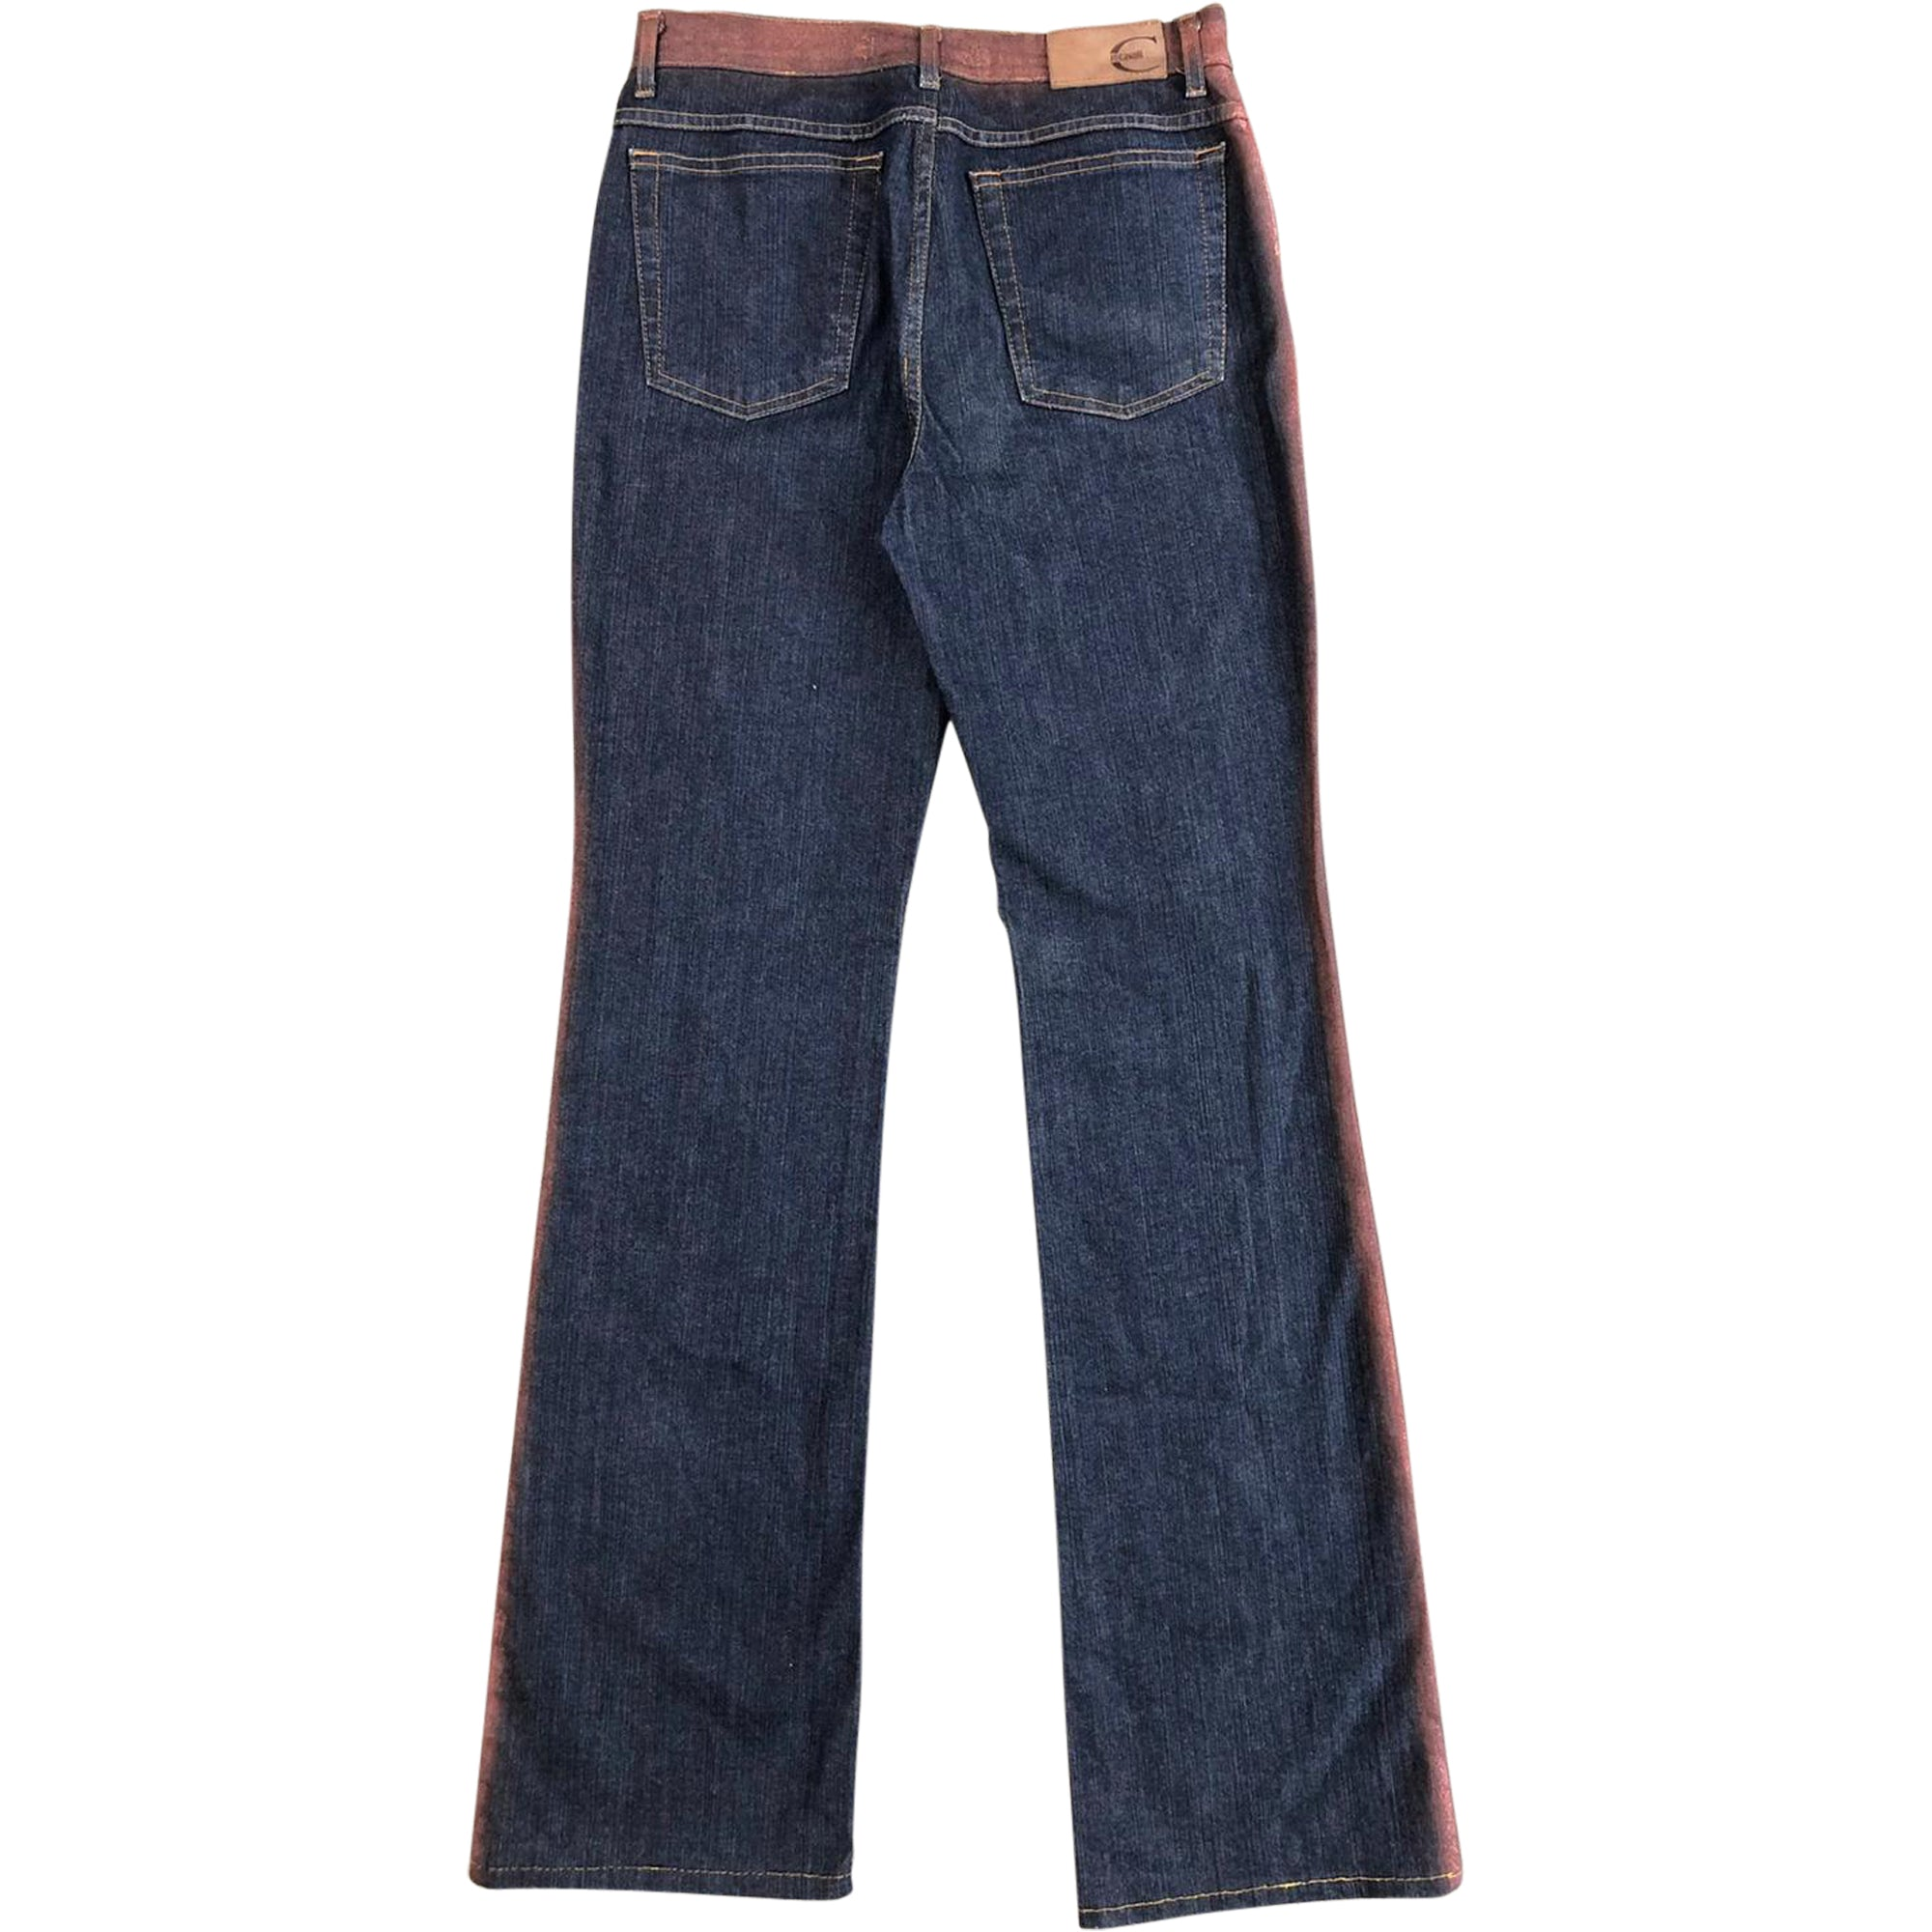 Roberto Cavalli Copper Trim Jeans (Indigo) UK 10